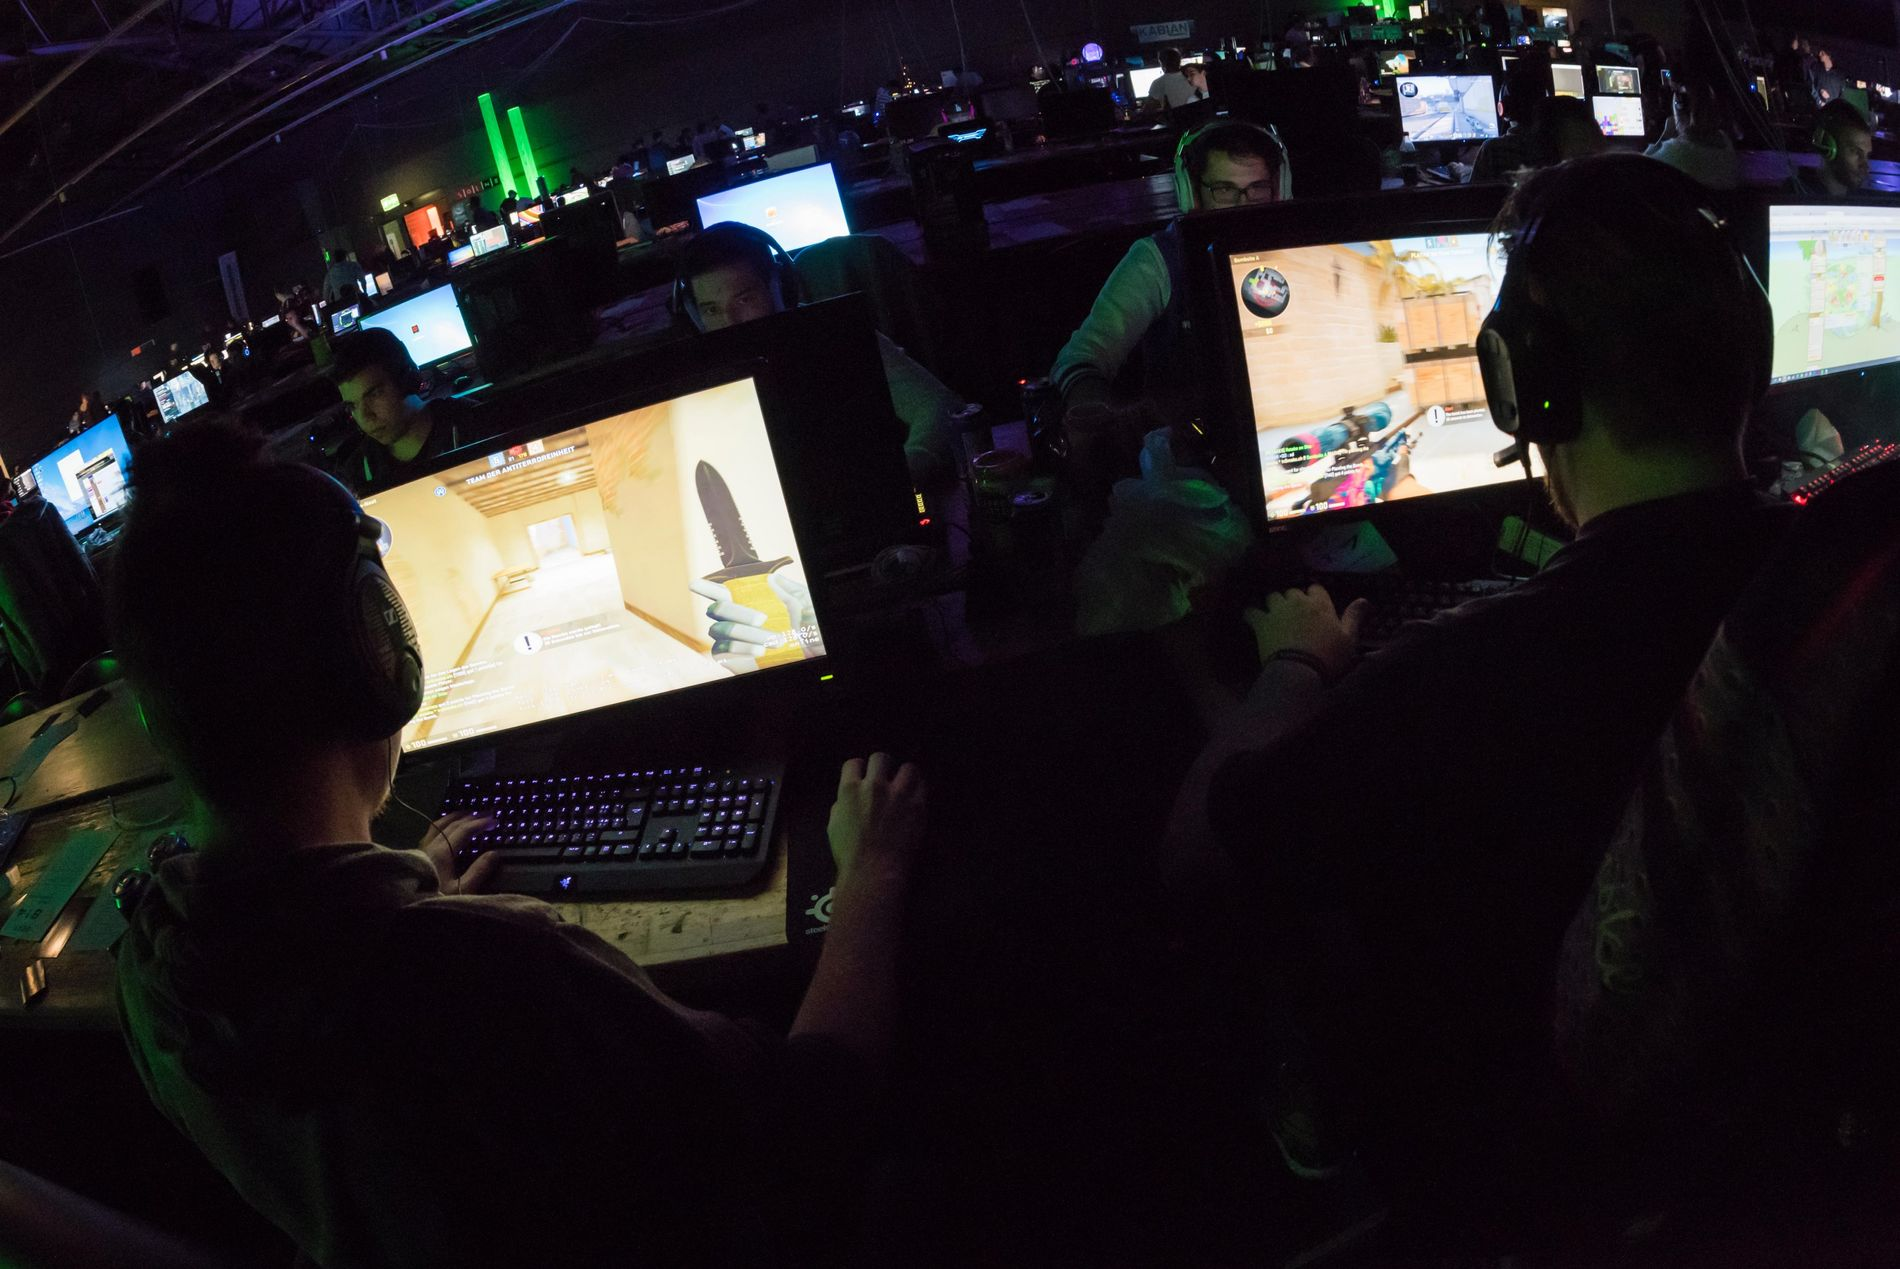 Competitors at a computer game tournament in Switzerland. For 3 days and nights, competing fans and ...